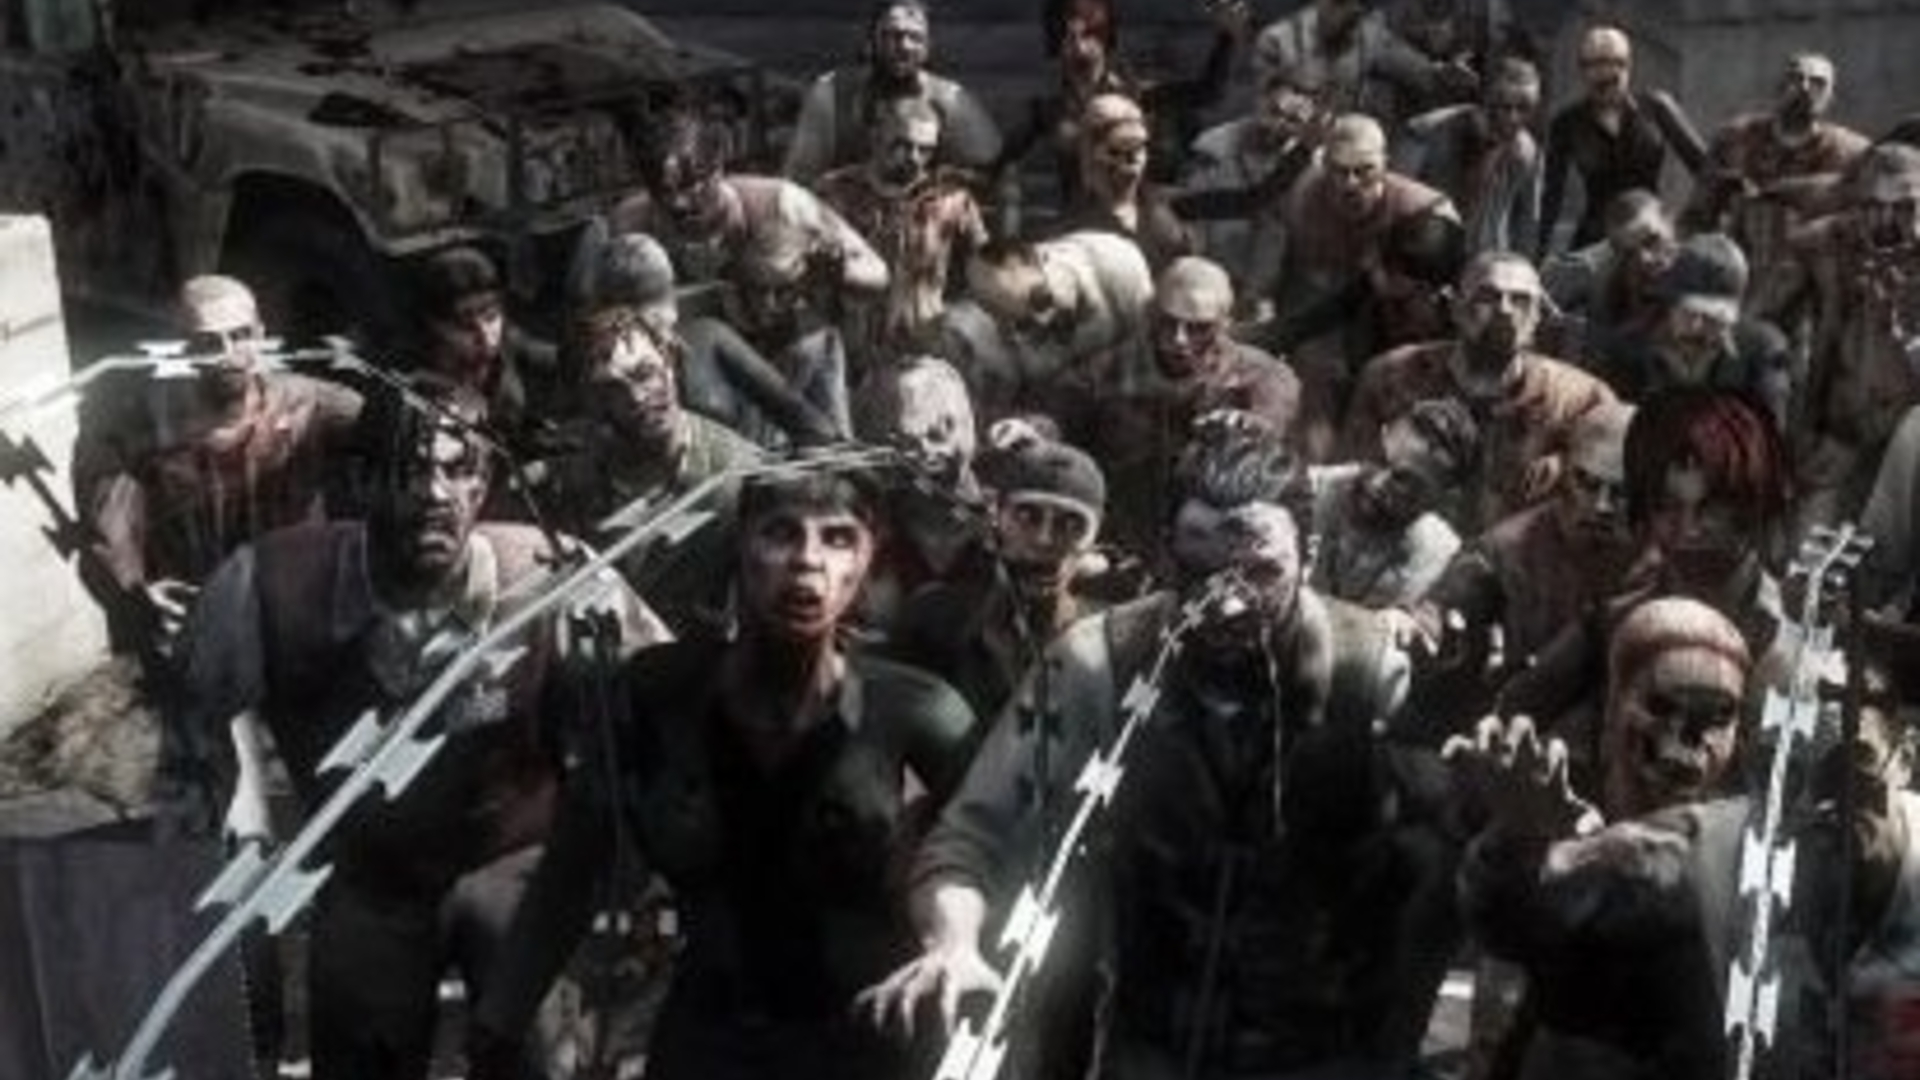 The War Z sold 2.8m copies despite dismal reception